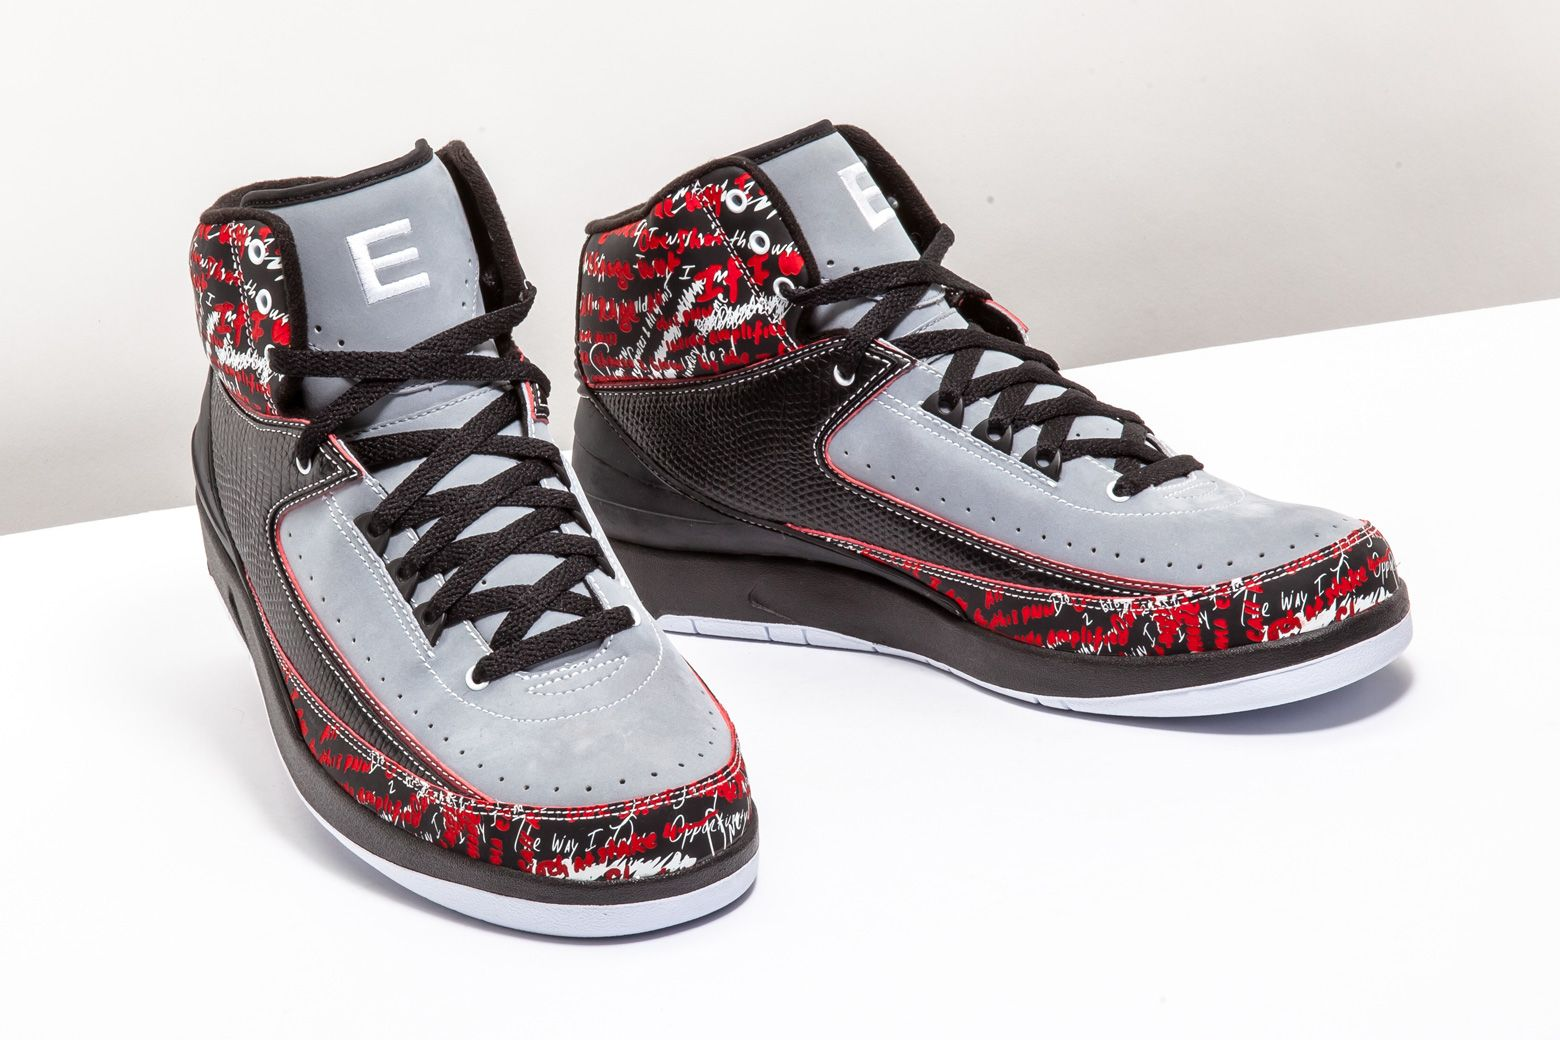 detailing 995d7 db620 In 2008, Eminem released a limited 313 pair run of the Air Jordan 2 to  celebrate his biography  The Way I Am.